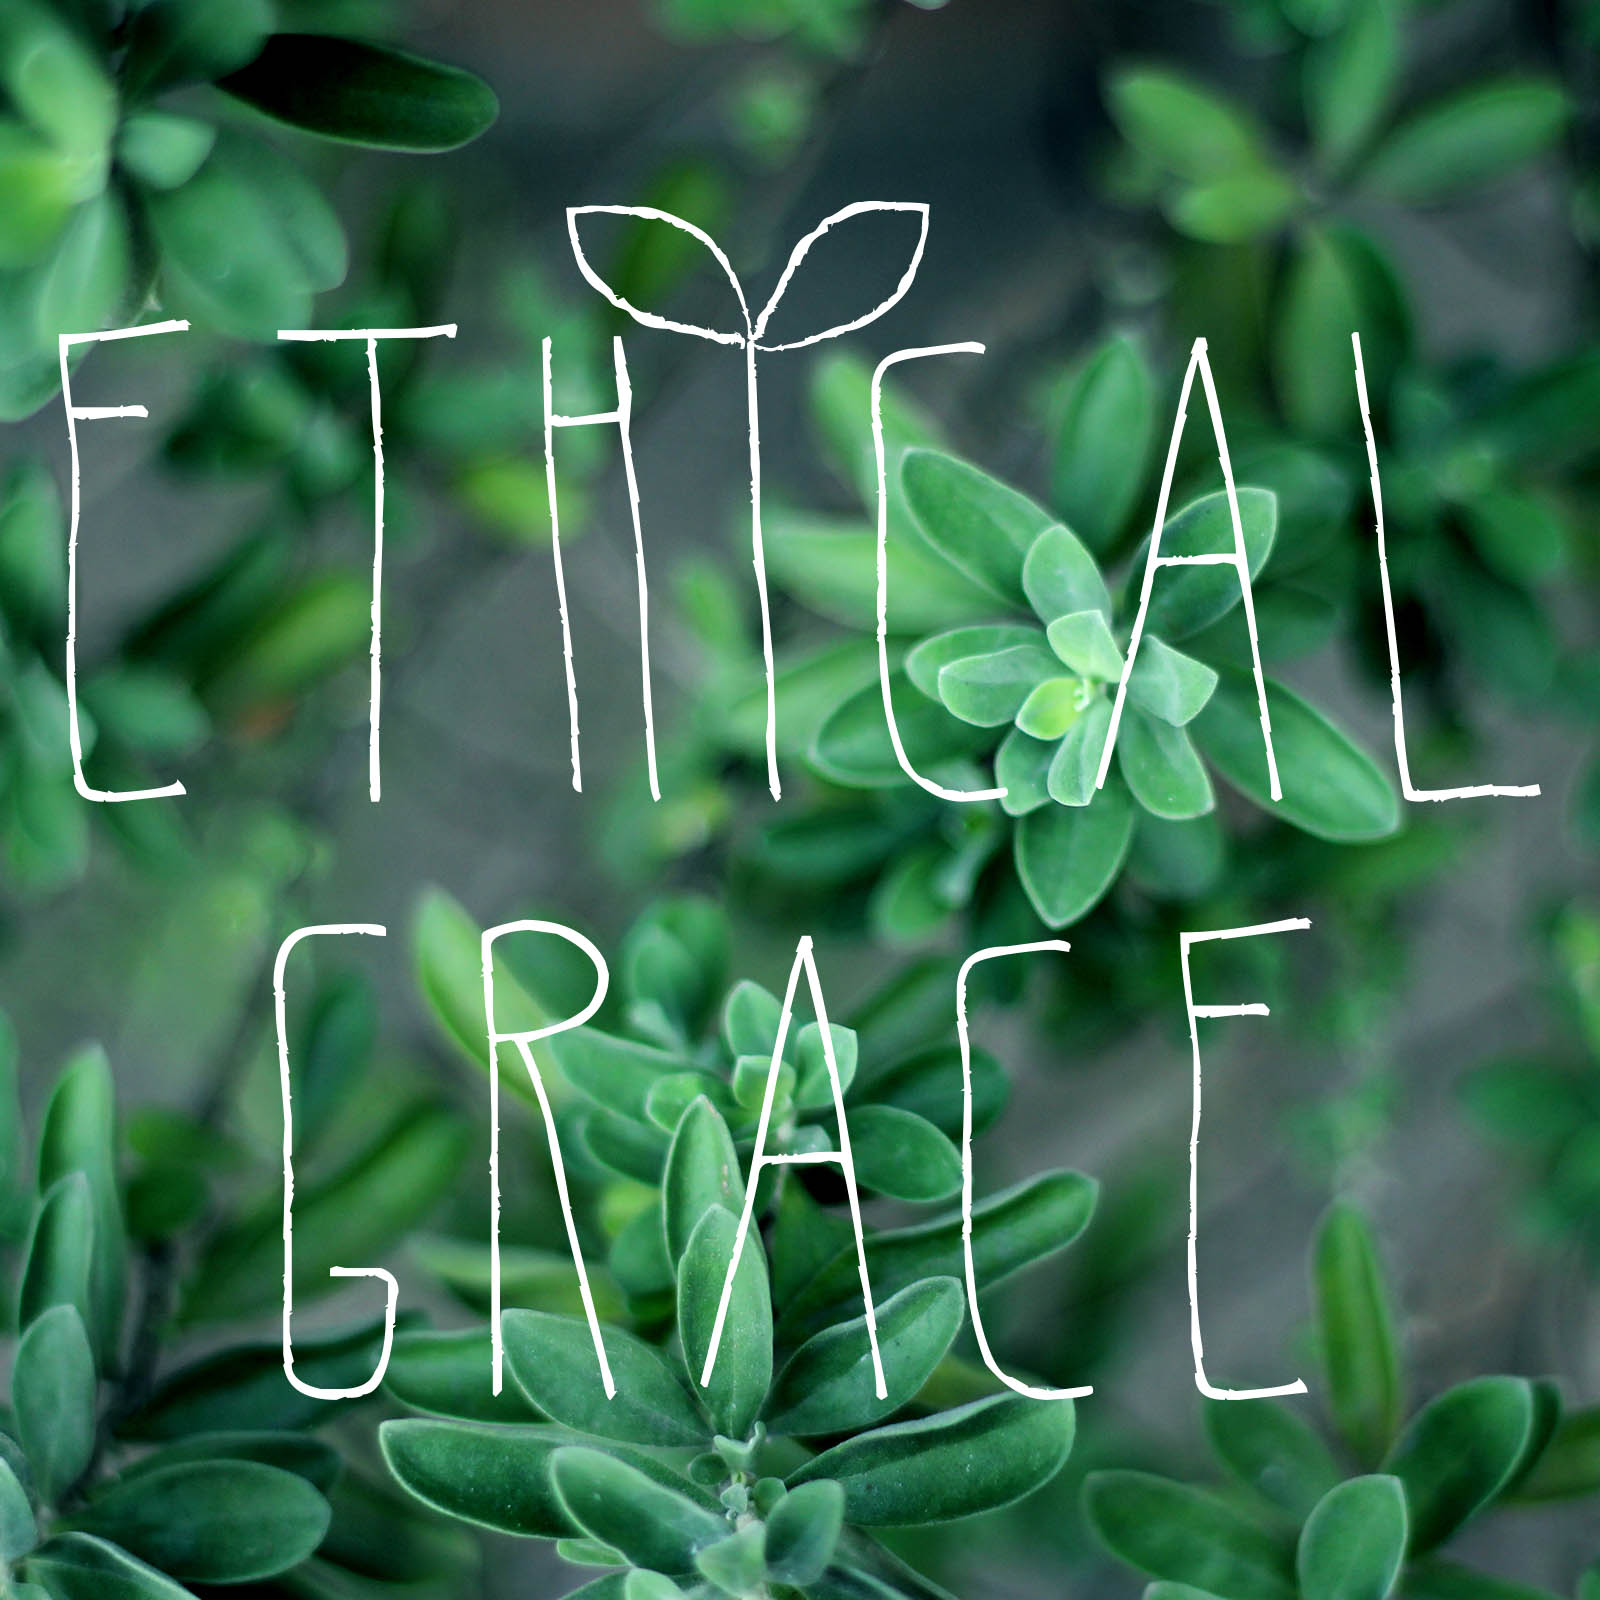 Ethical Grace